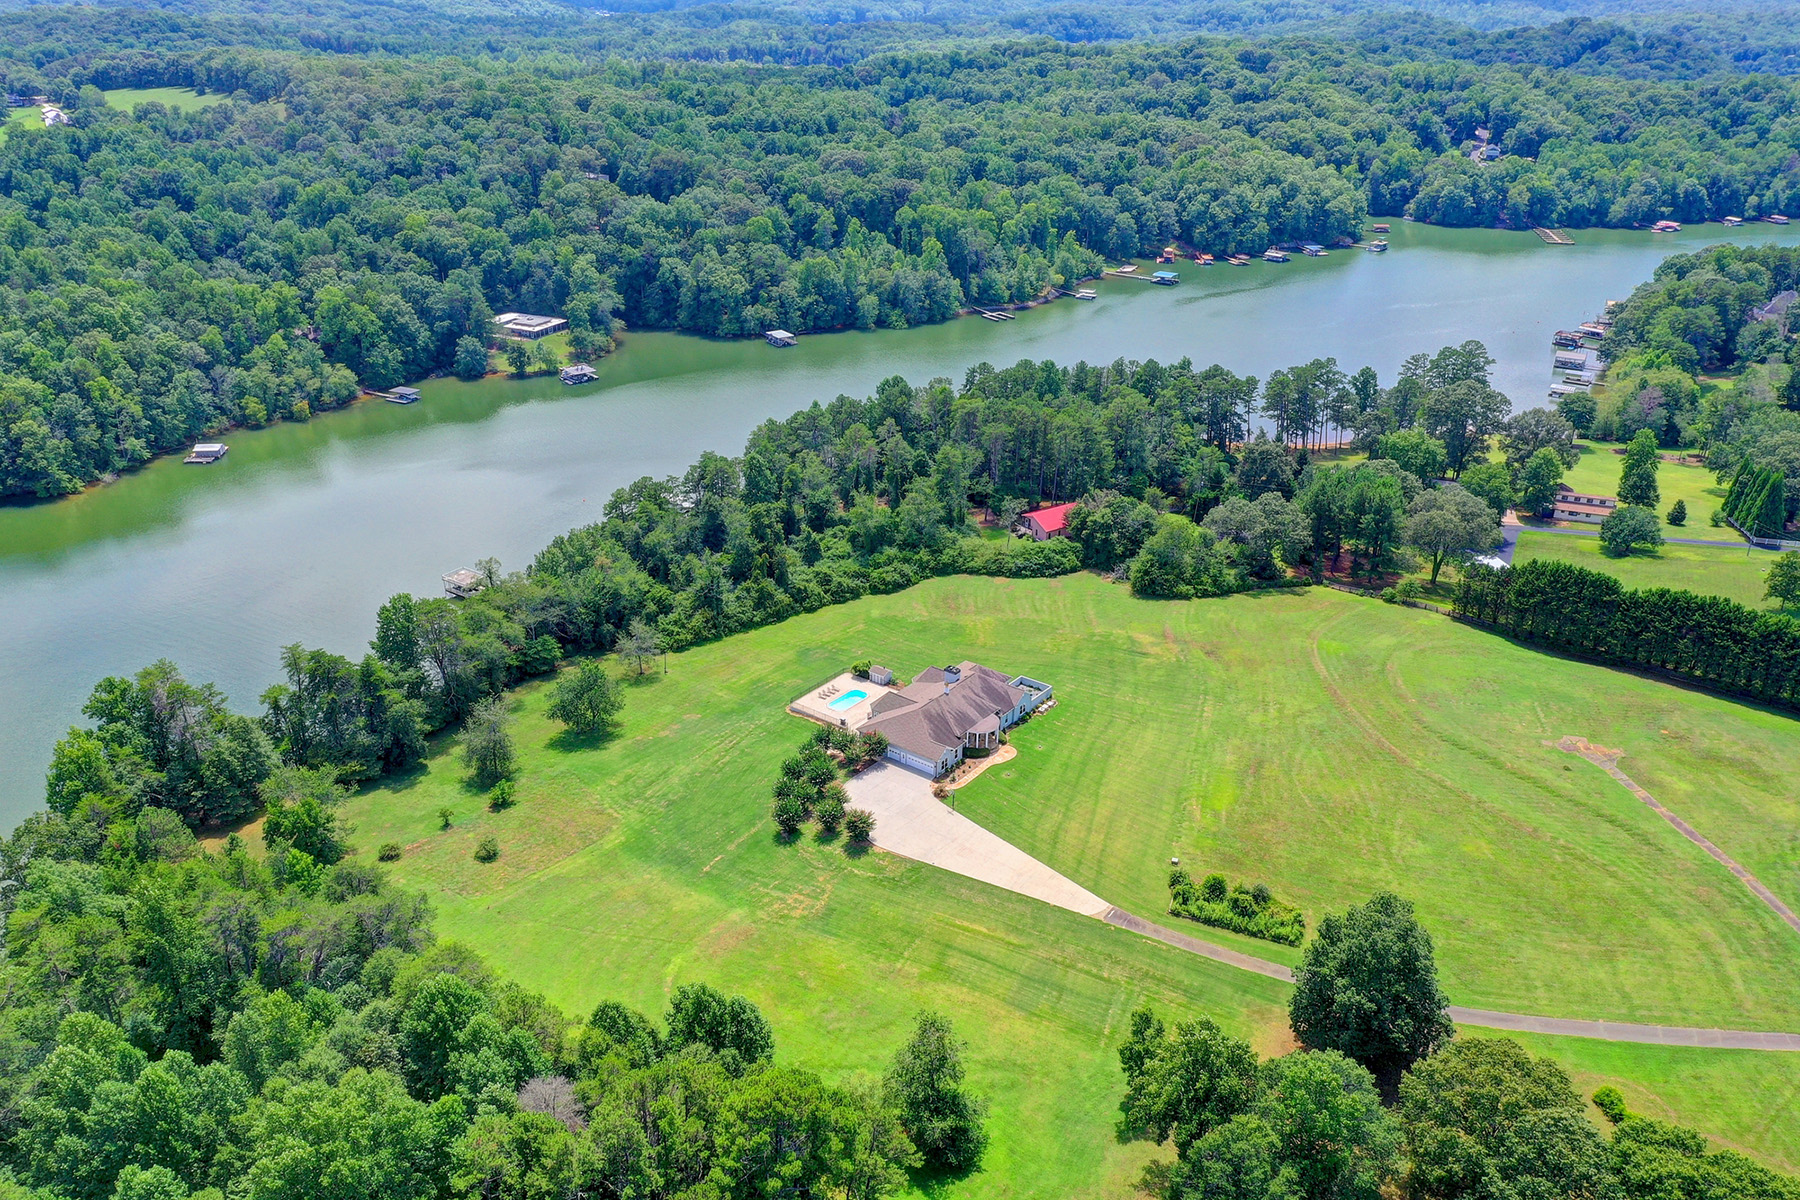 Single Family Homes por un Venta en Stunning Lake Lanier Property Perfect for Family Compound or Developer 5609 Old Wilkie Road, Gainesville, Georgia 30506 Estados Unidos